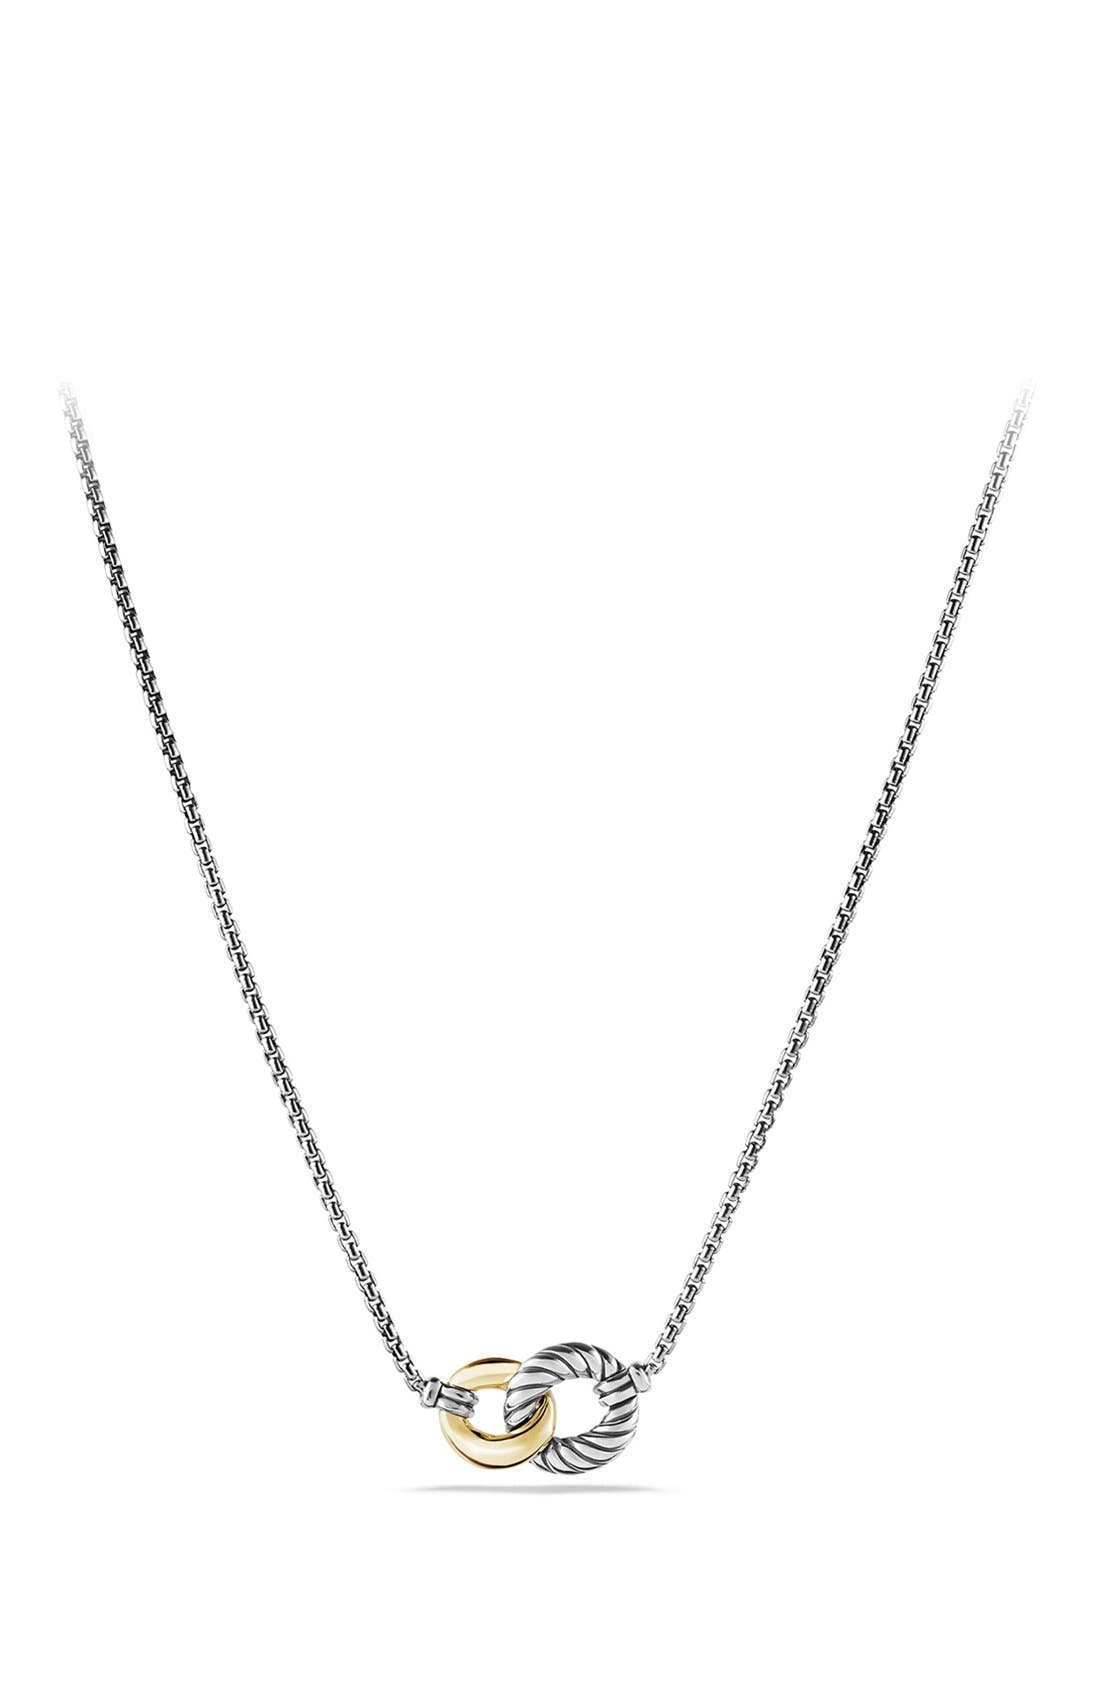 Alternate Image 1 Selected - David Yurman'Belmont' Curb Link Necklace with 18K Gold